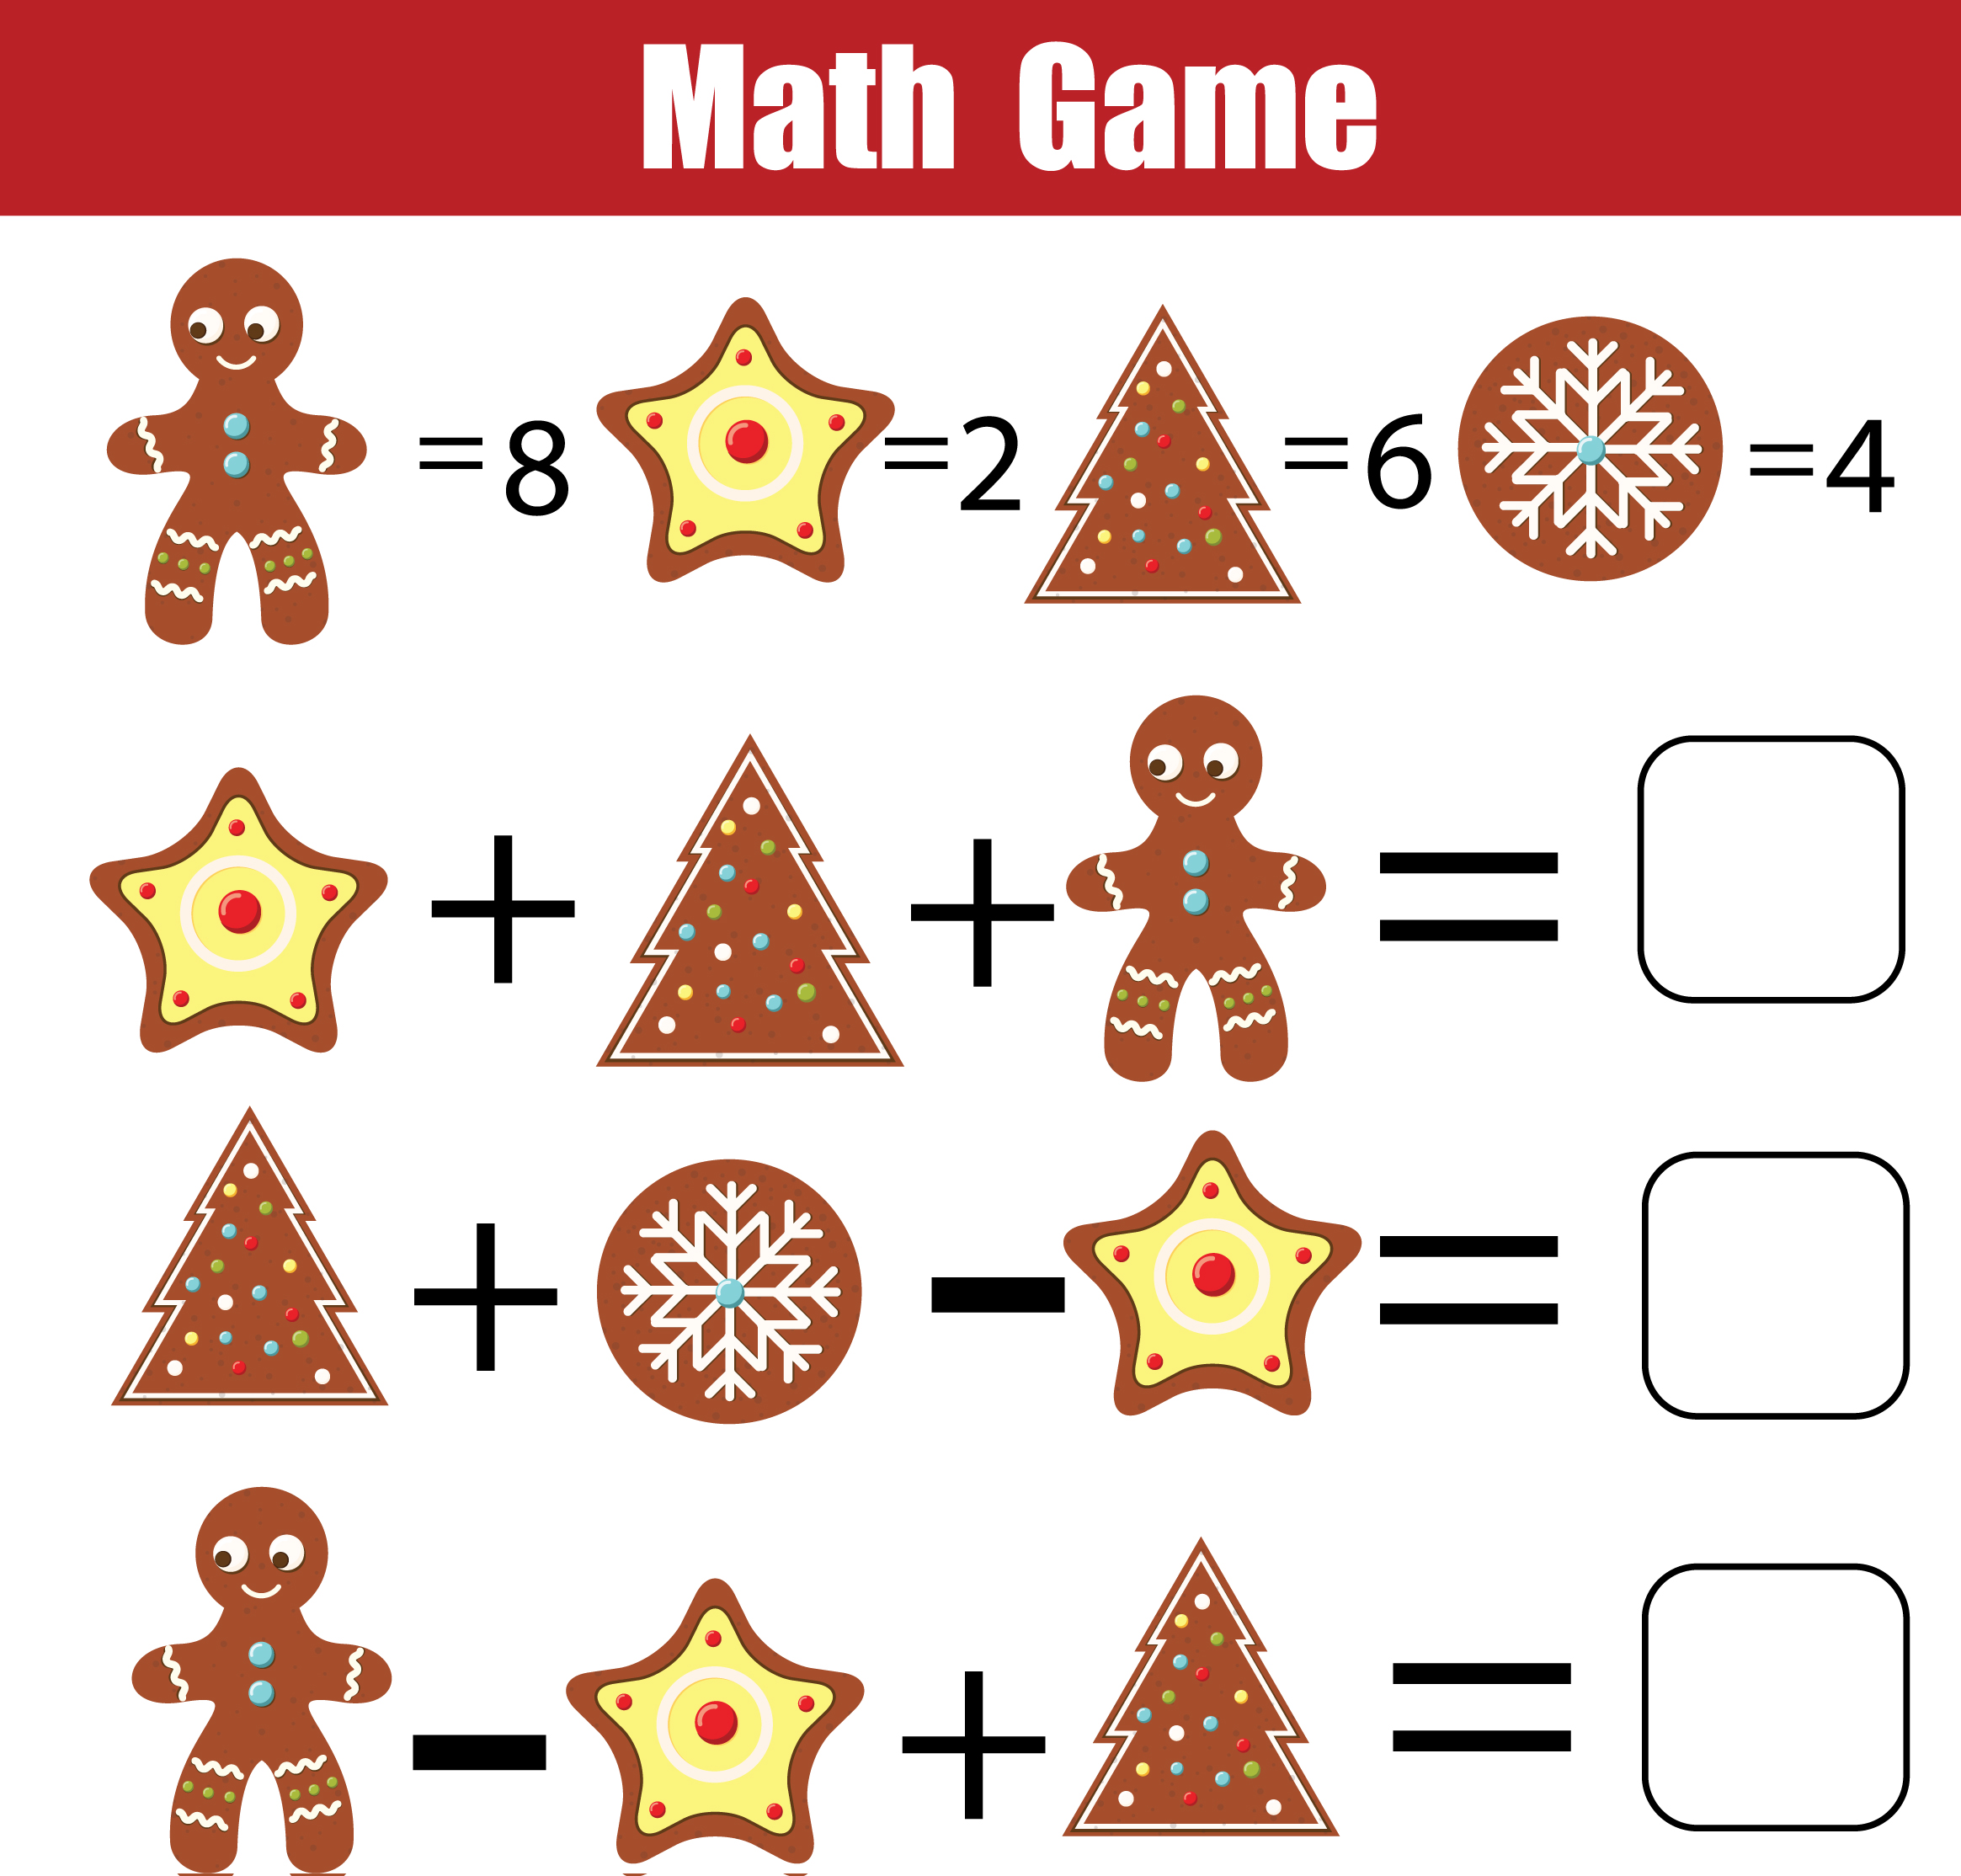 It is a photo of 24 Math Game Printable with class 8th grade